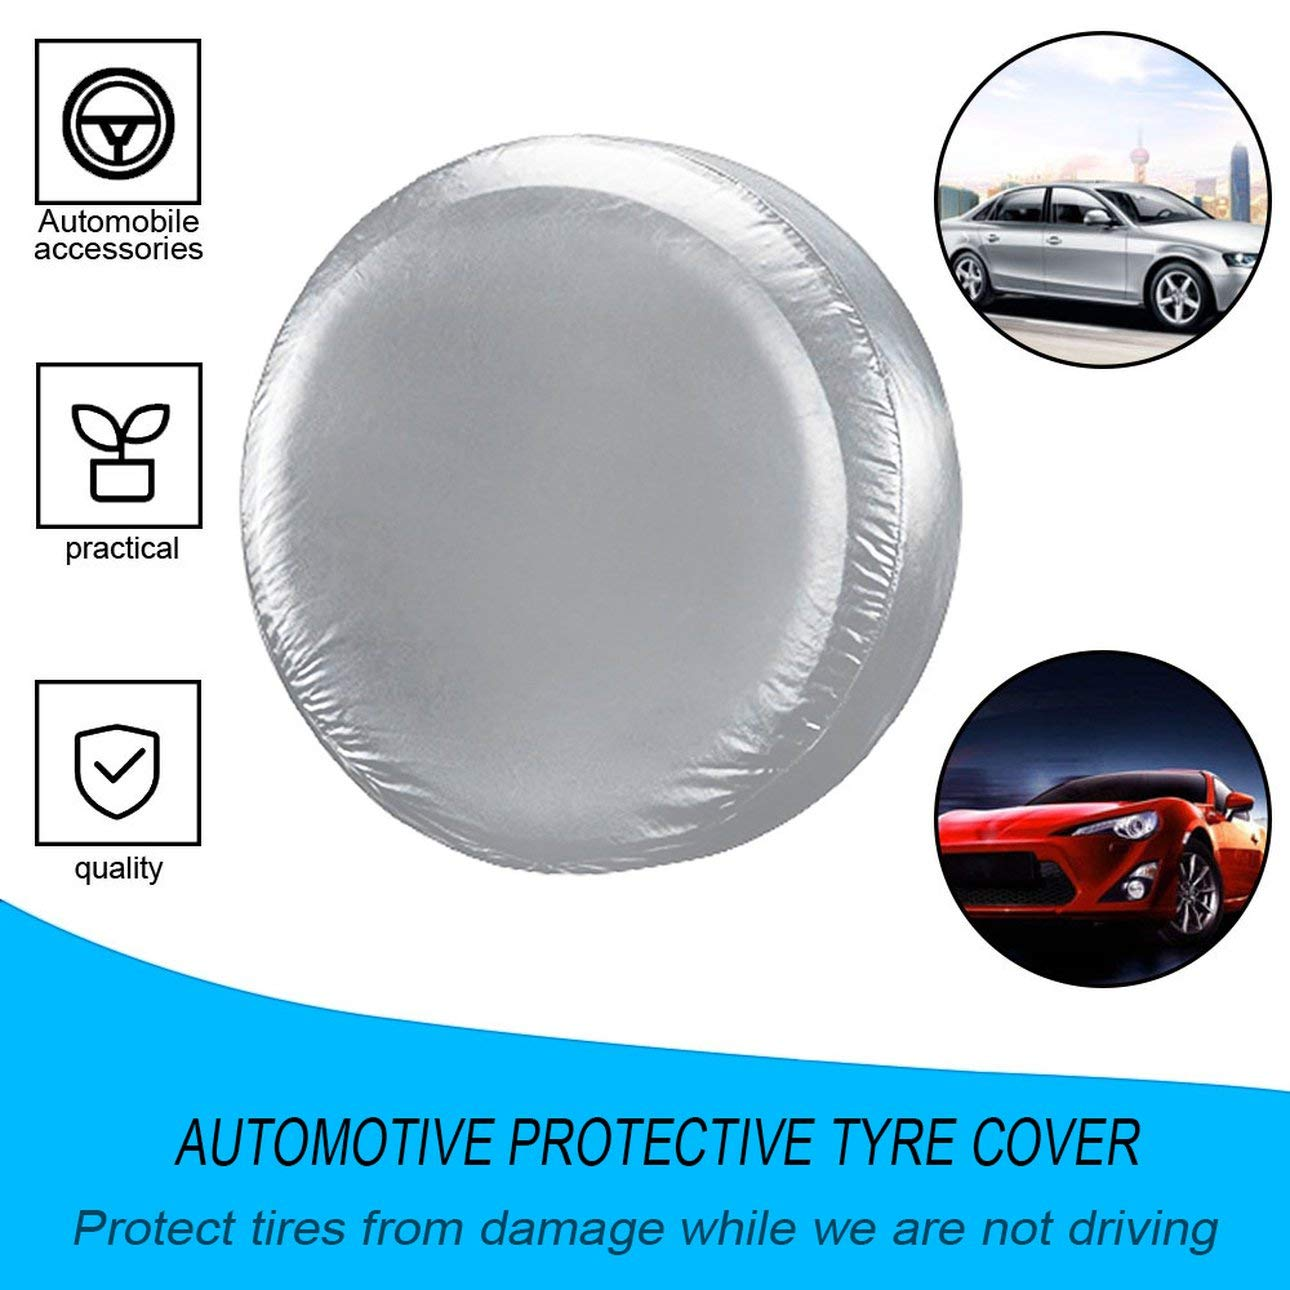 Silver/&L Automobile Car Spare Tire Cover Heavy Duty Waterproof Vehicle Wheel Elastic Protective Case Dustproof Tyre Cover Bag for SUV